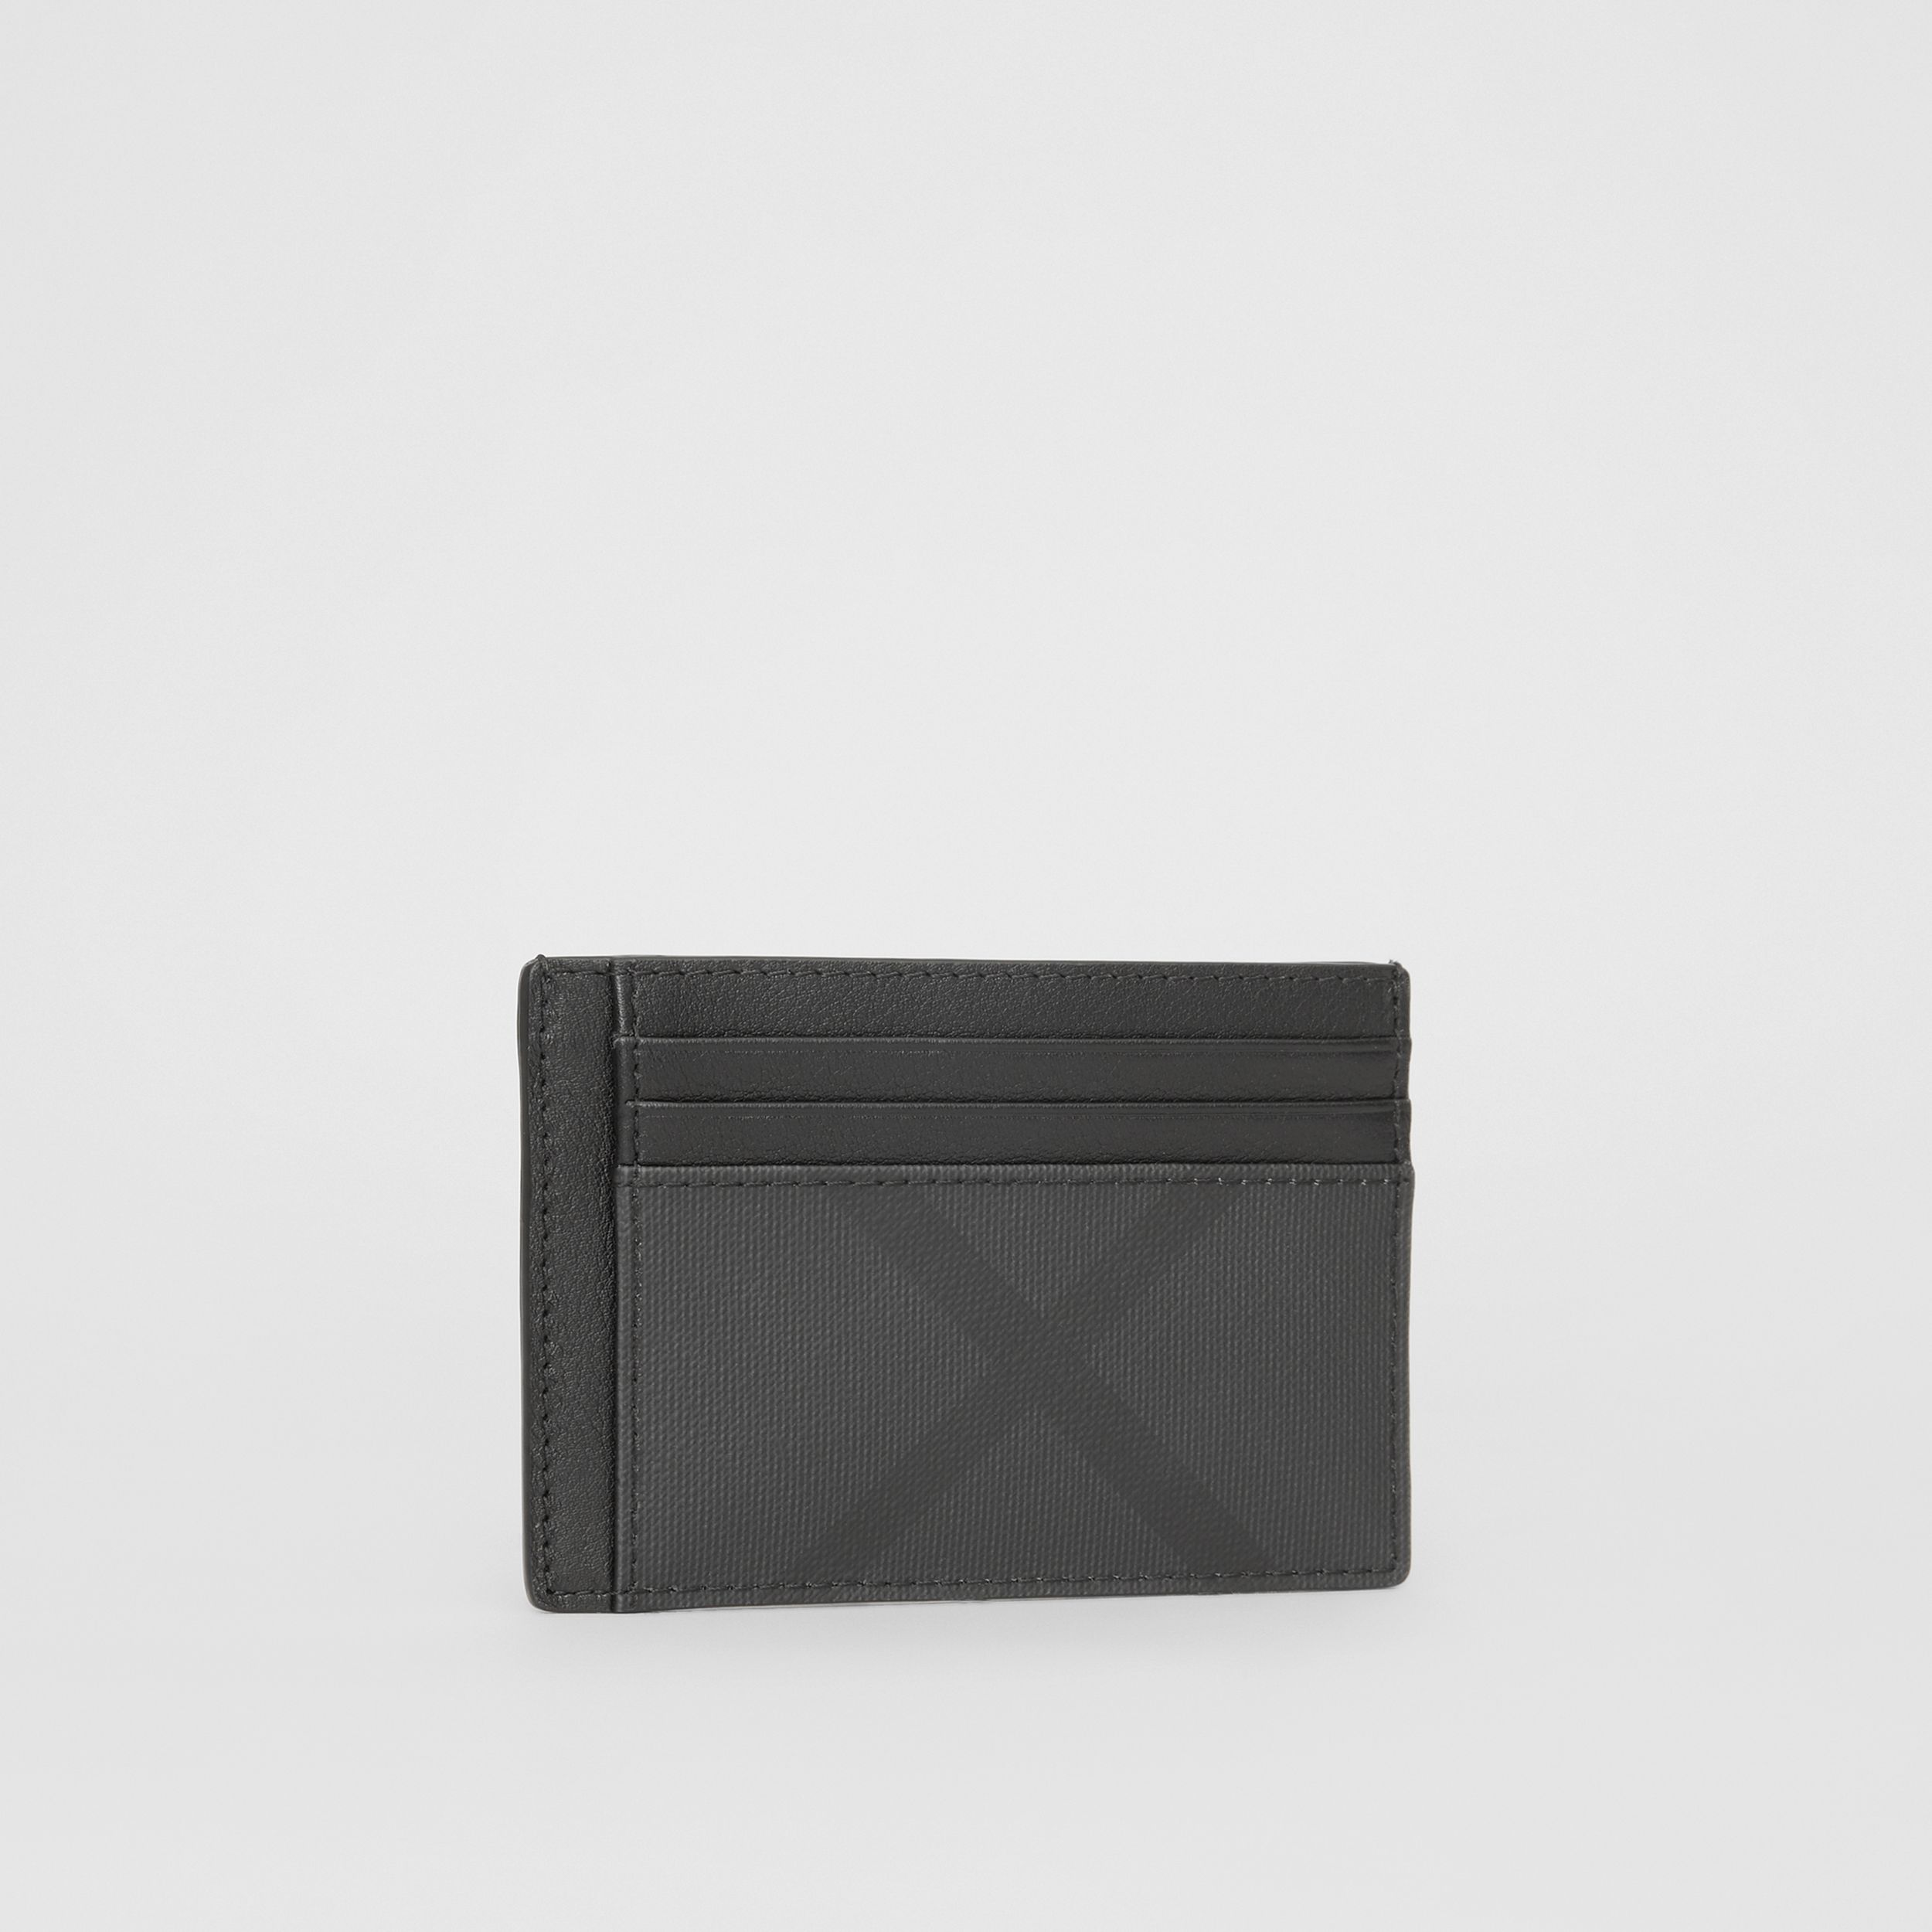 London Check and Leather Card Case in Dark Charcoal - Men | Burberry United Kingdom - 4